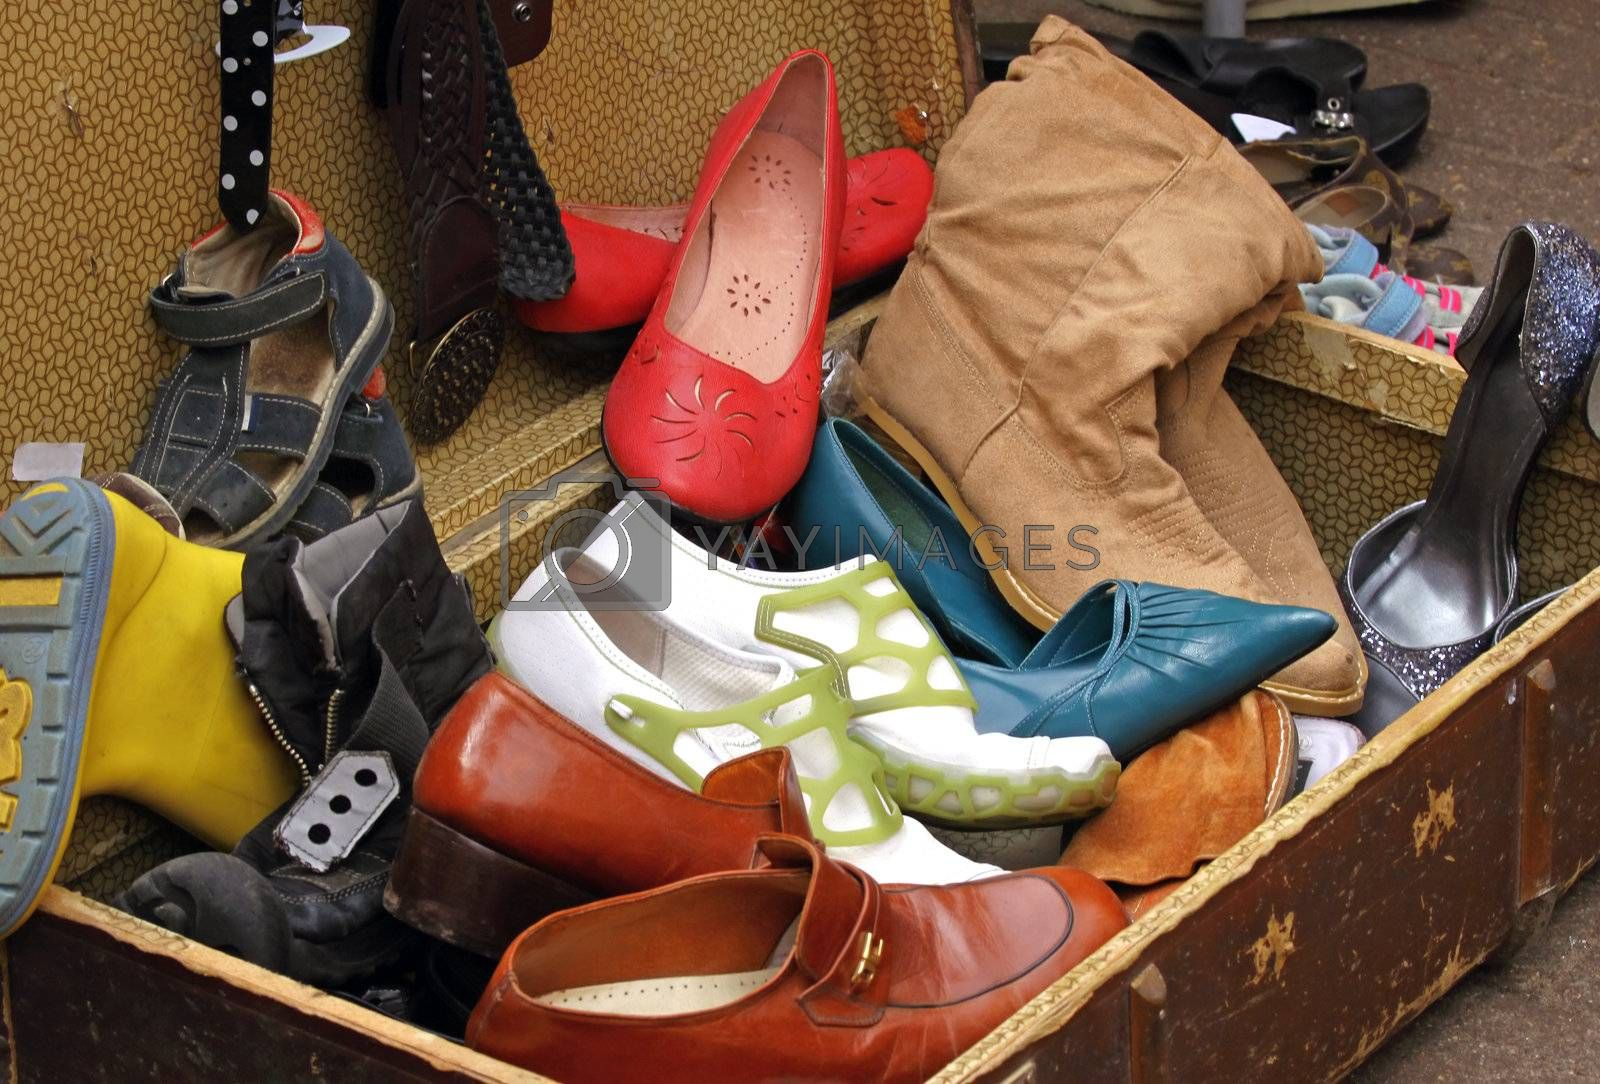 Suitcase full of old worn out shoes at flea market